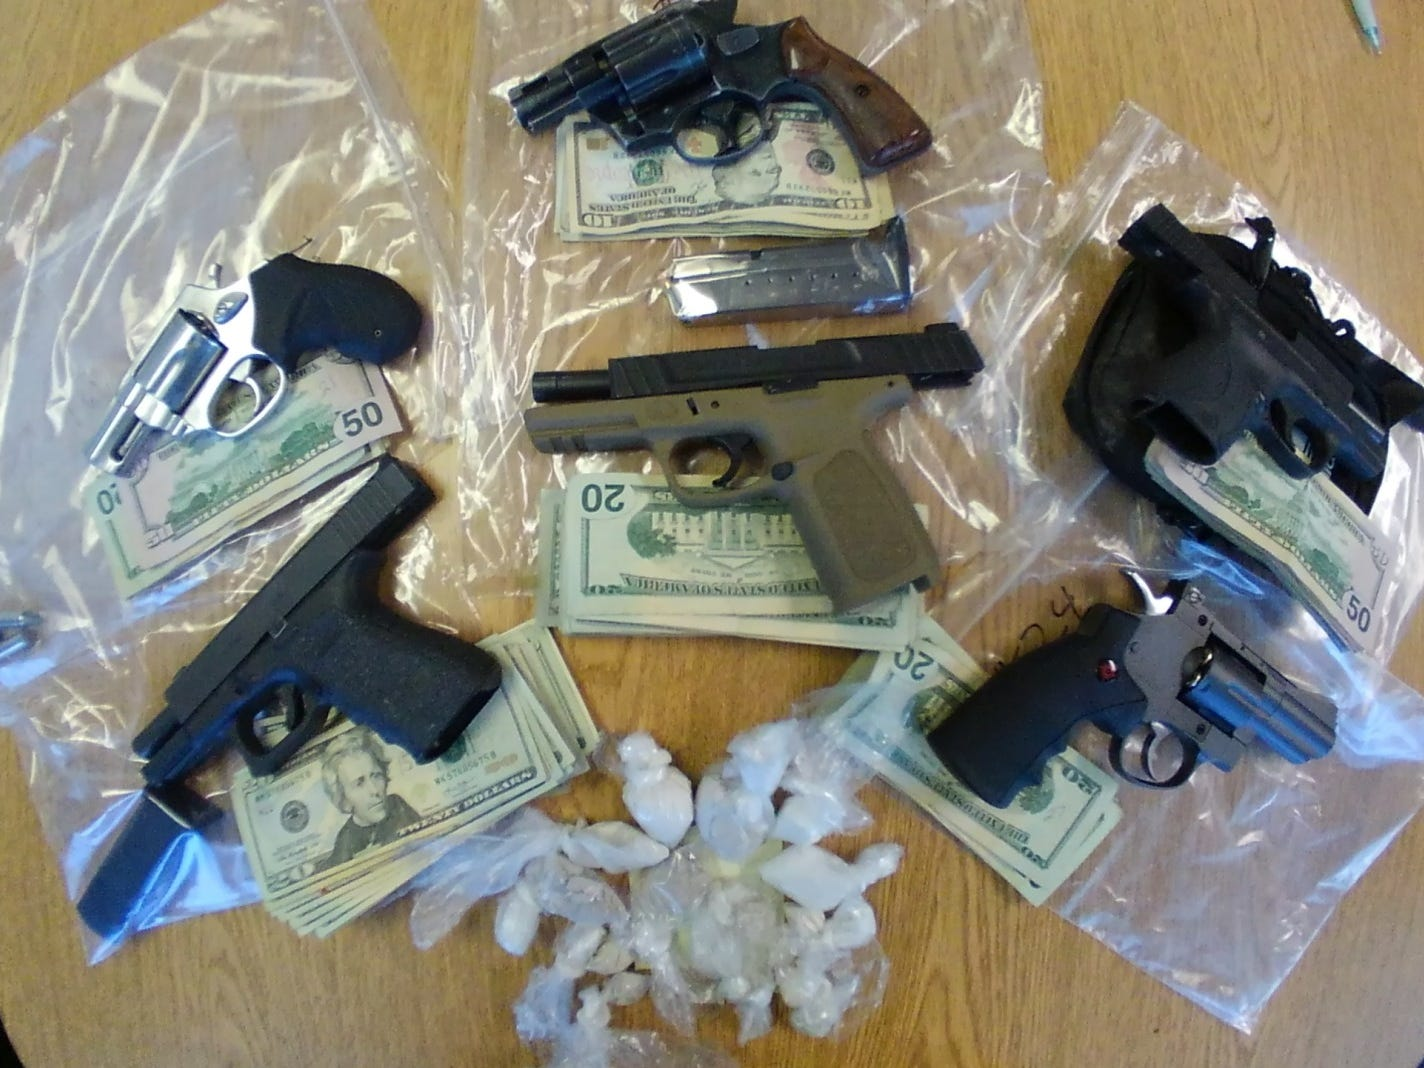 The Chillicothe police reported seizing 78 grams of heroin, 13 grams of methamphetamine, 3 grams of cocaine, 5 loaded handguns, and $3,539.00 in cash during a Feb. 26, 2019, search warrant of a duplex on Hirn Street.